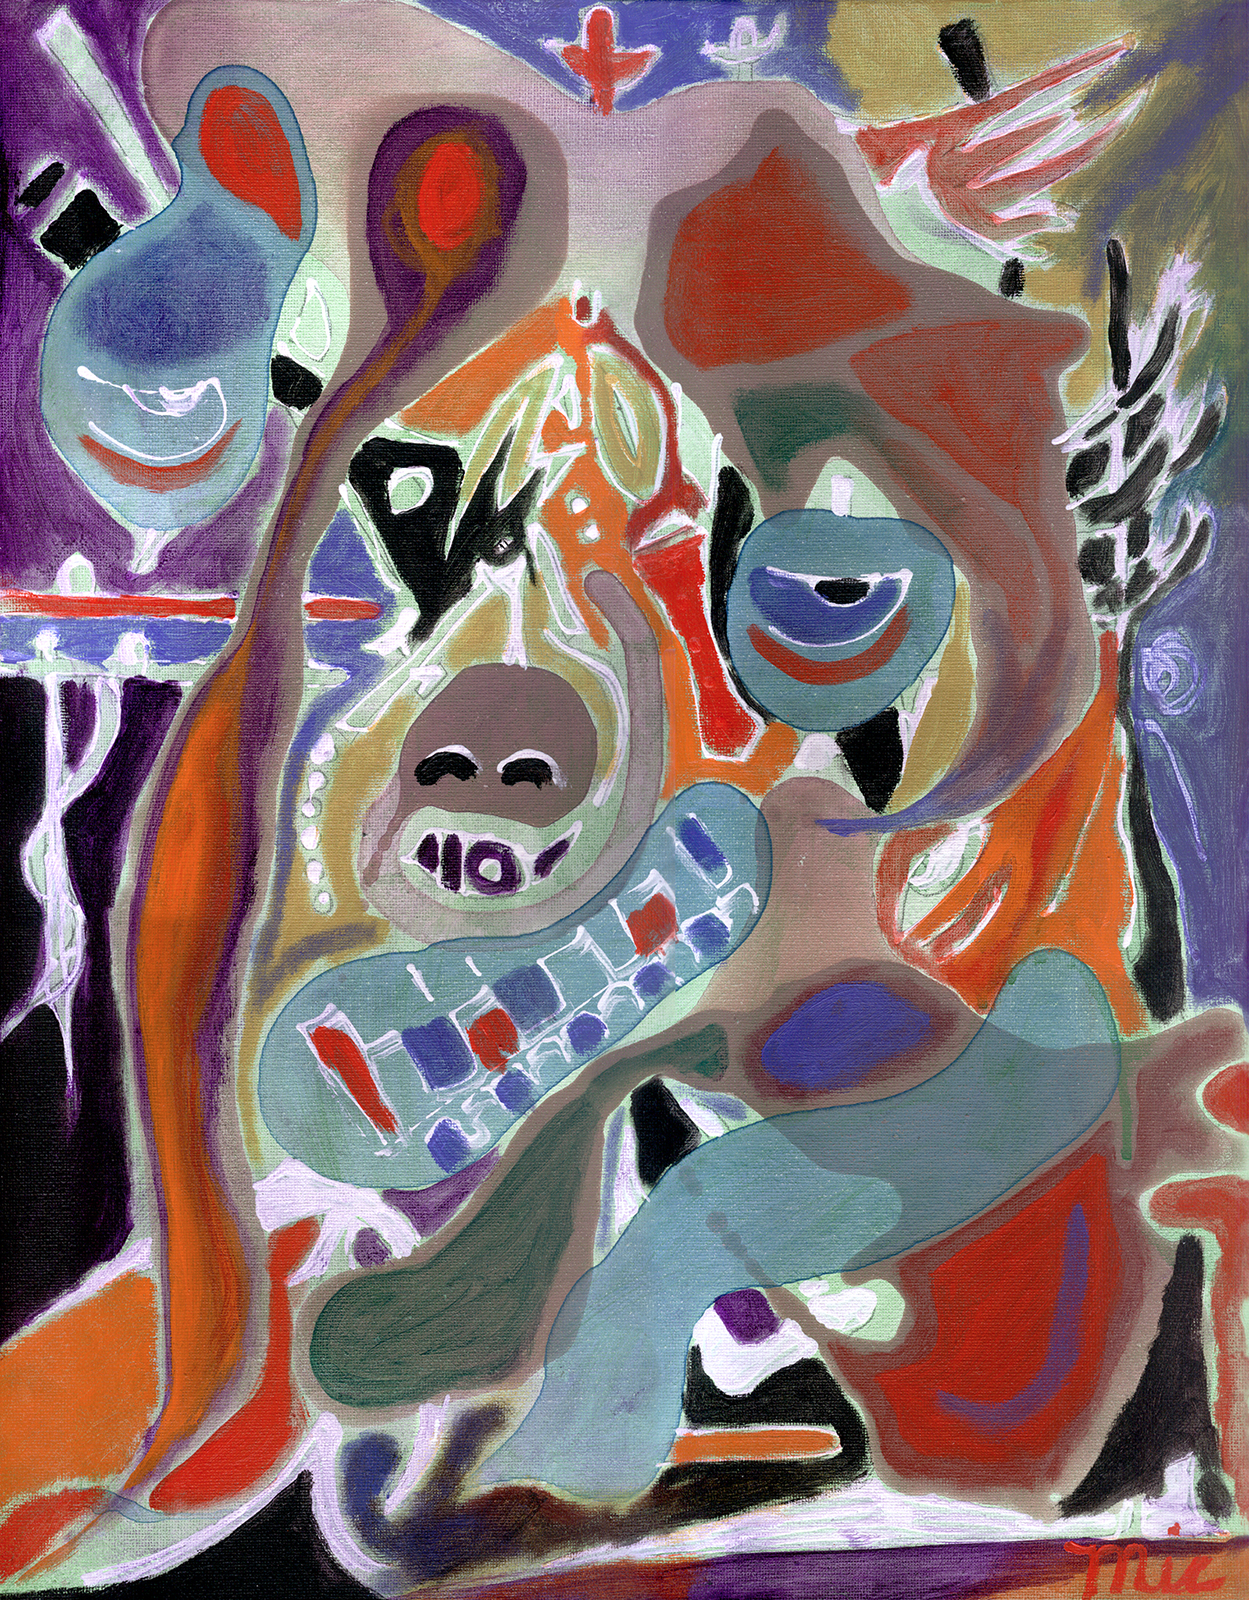 Jerry Garcia in the Abstract - Private collection Lorinda GreerGiclee Limited Edition and canvas prints are available. Please visit the prints gallery.